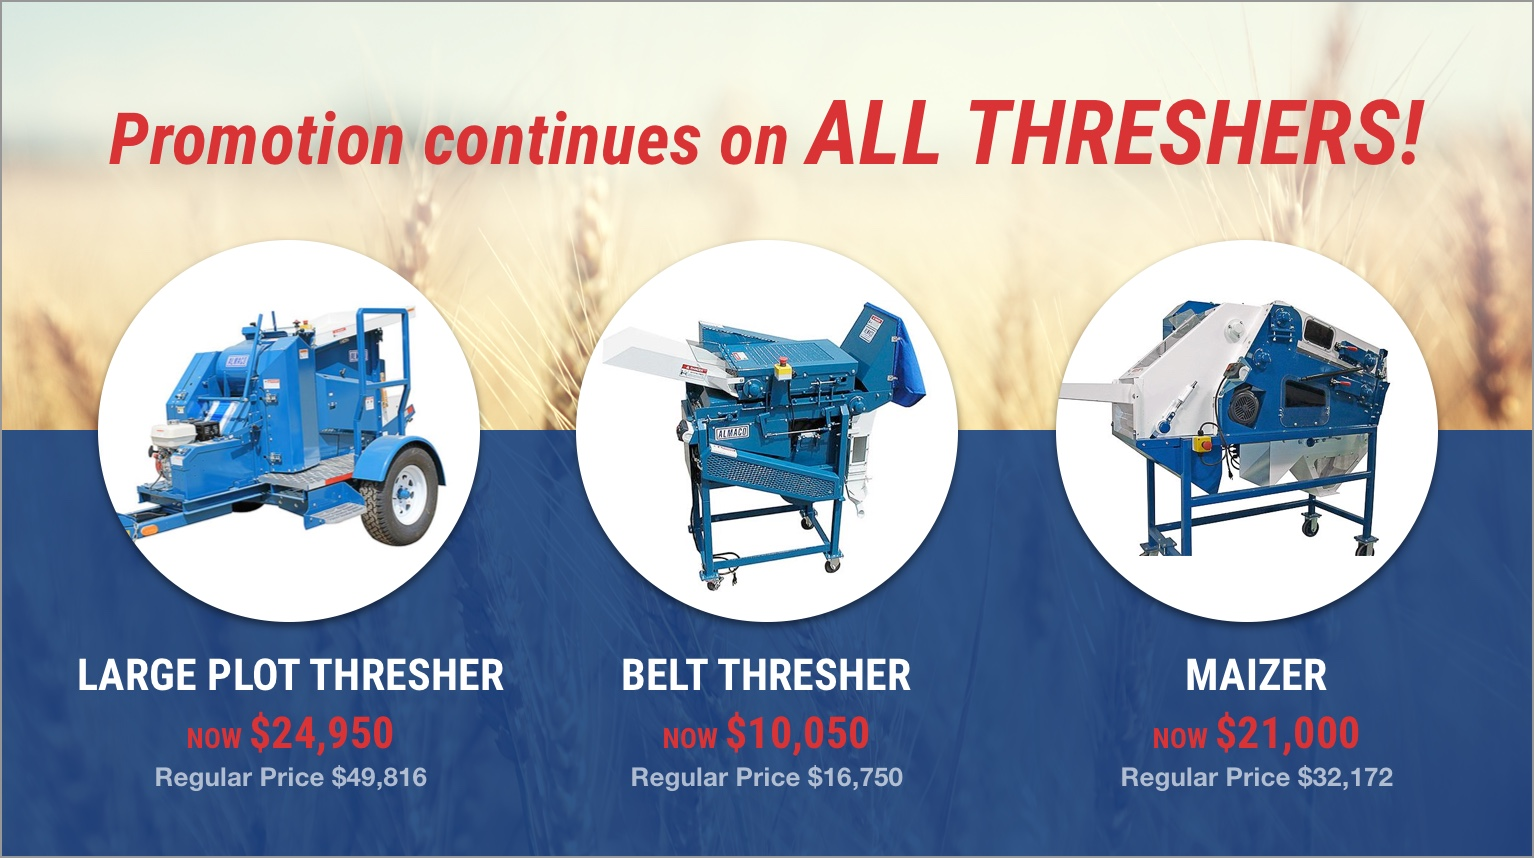 Promotion continues on all Threshers!